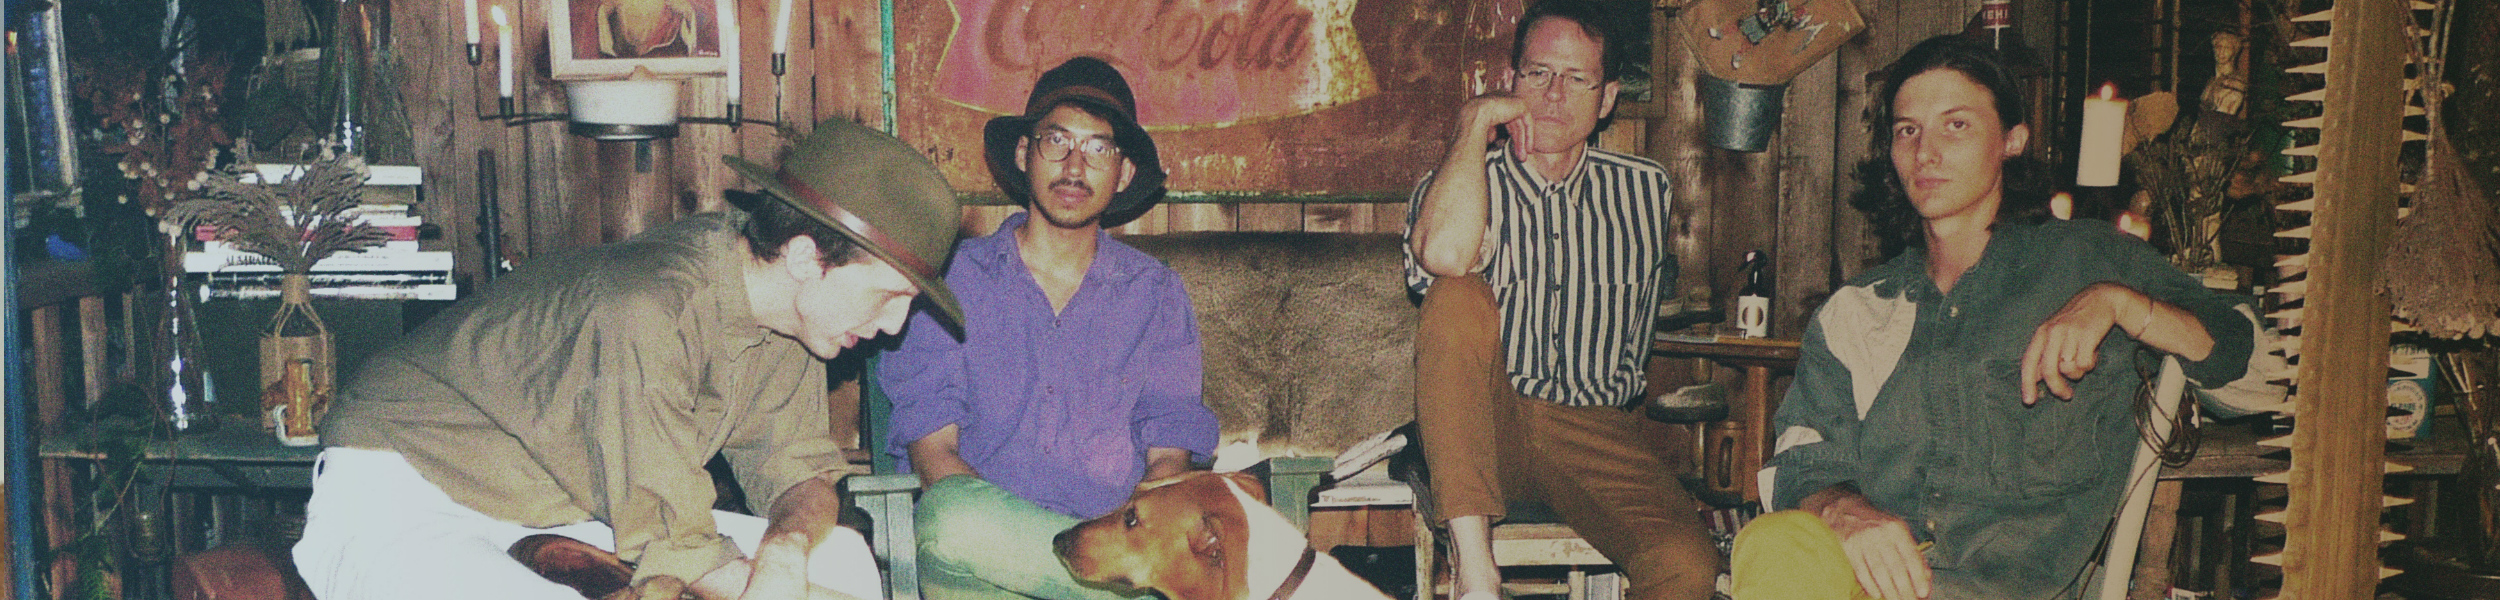 Deerhunter - 'Microcastle' LP Repress To Include 'Weird Era Cont.' Bonus Album